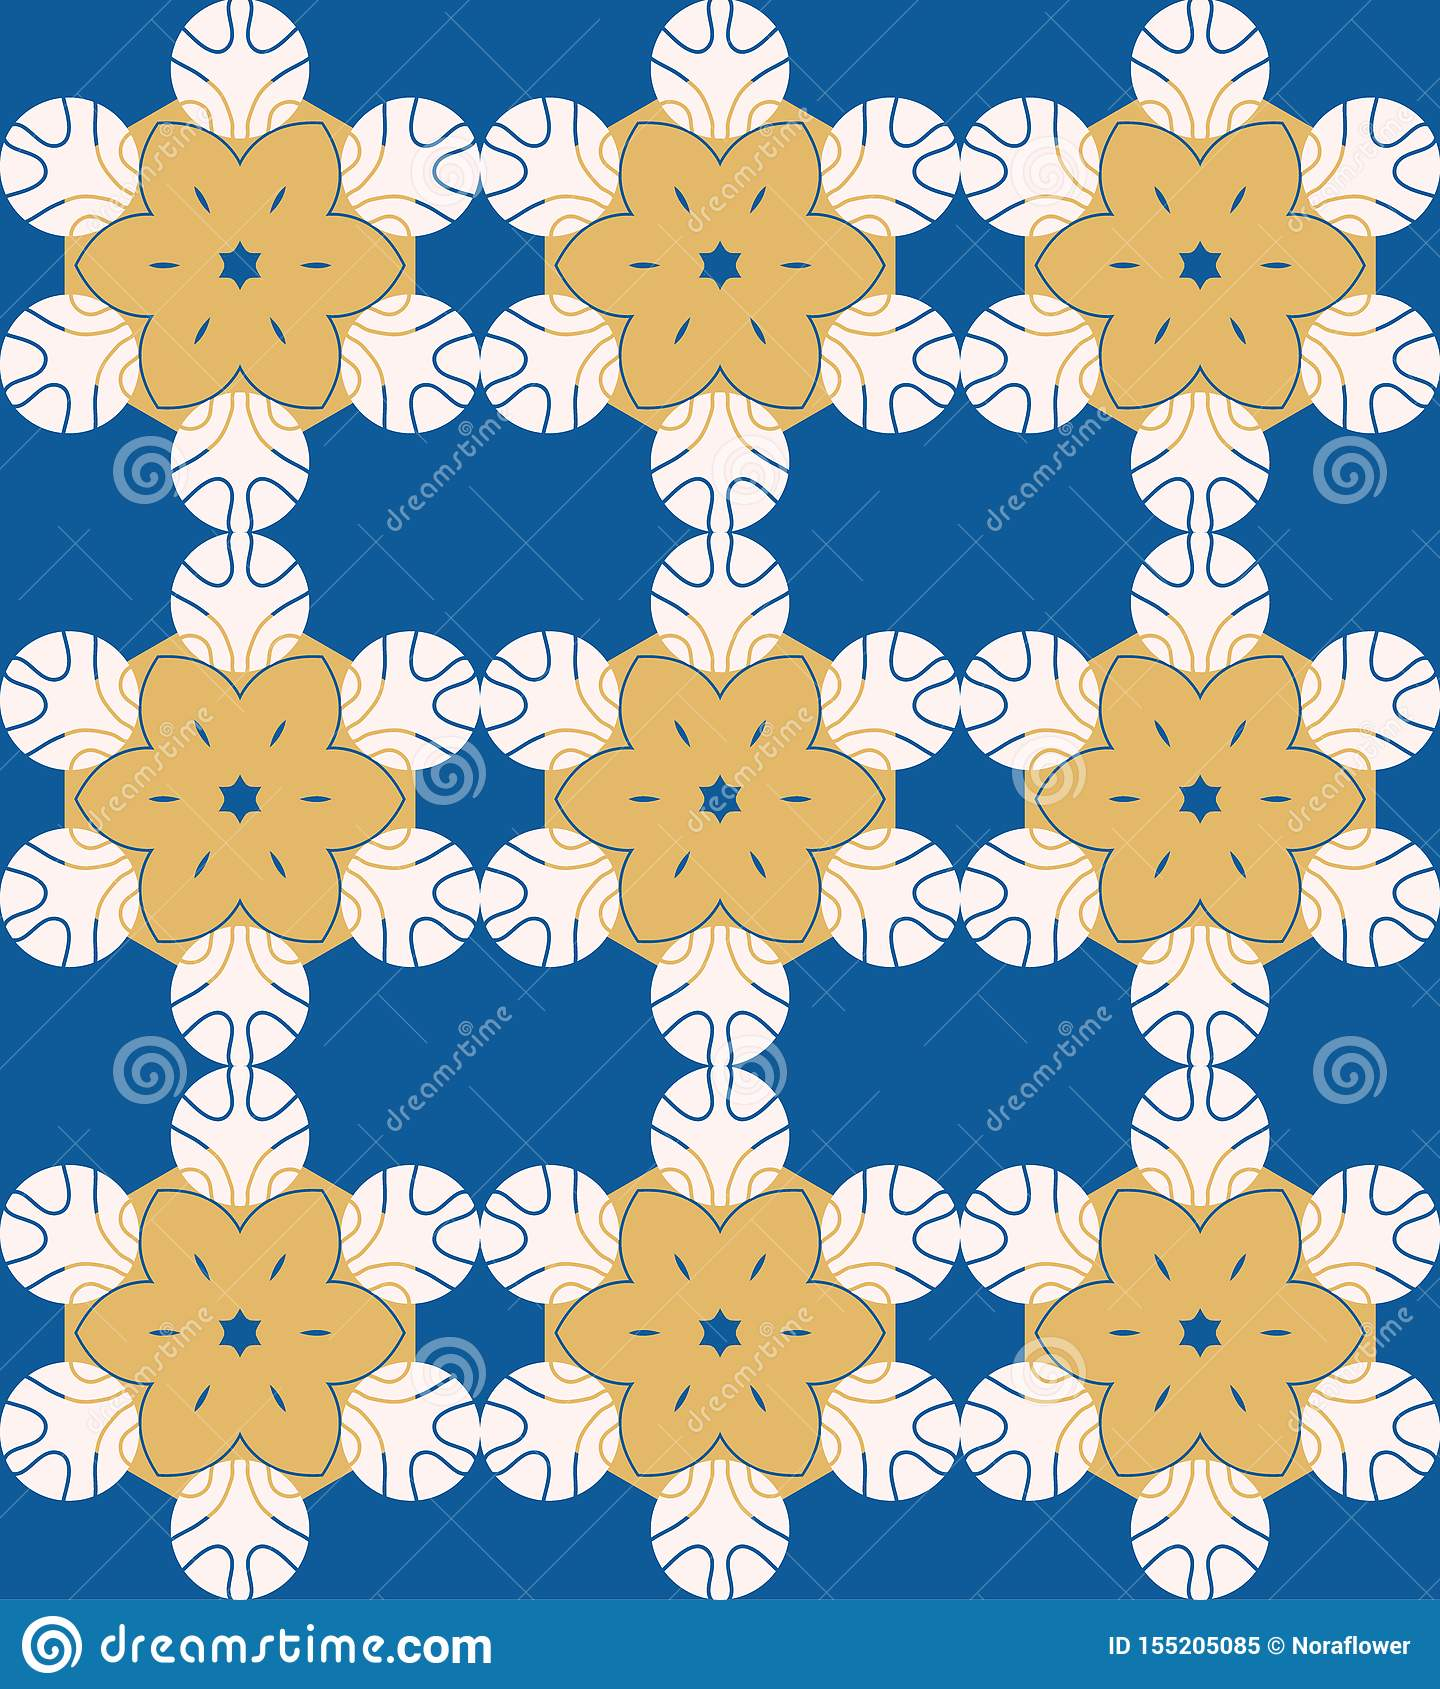 Vector abstract light colour seamless with geometric flower shaped elements. Decorative mandala pattern